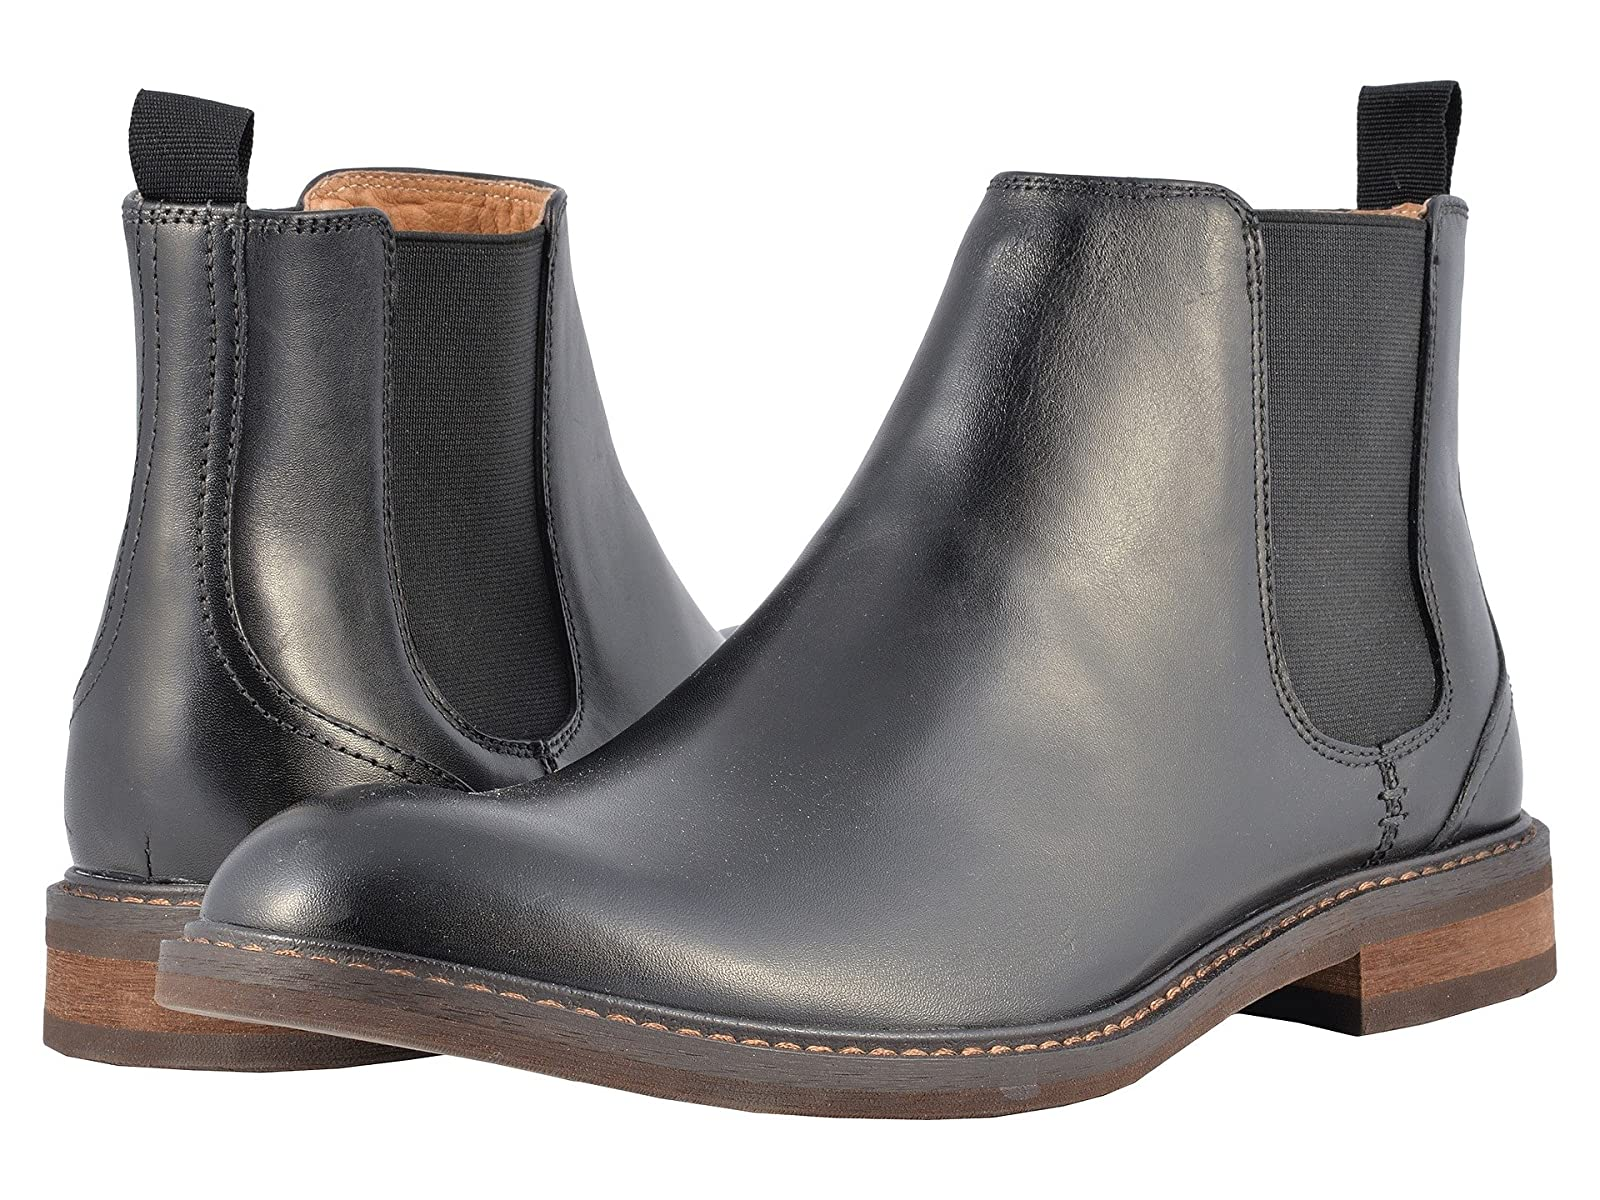 VIONIC KingsleyEconomical and quality shoes